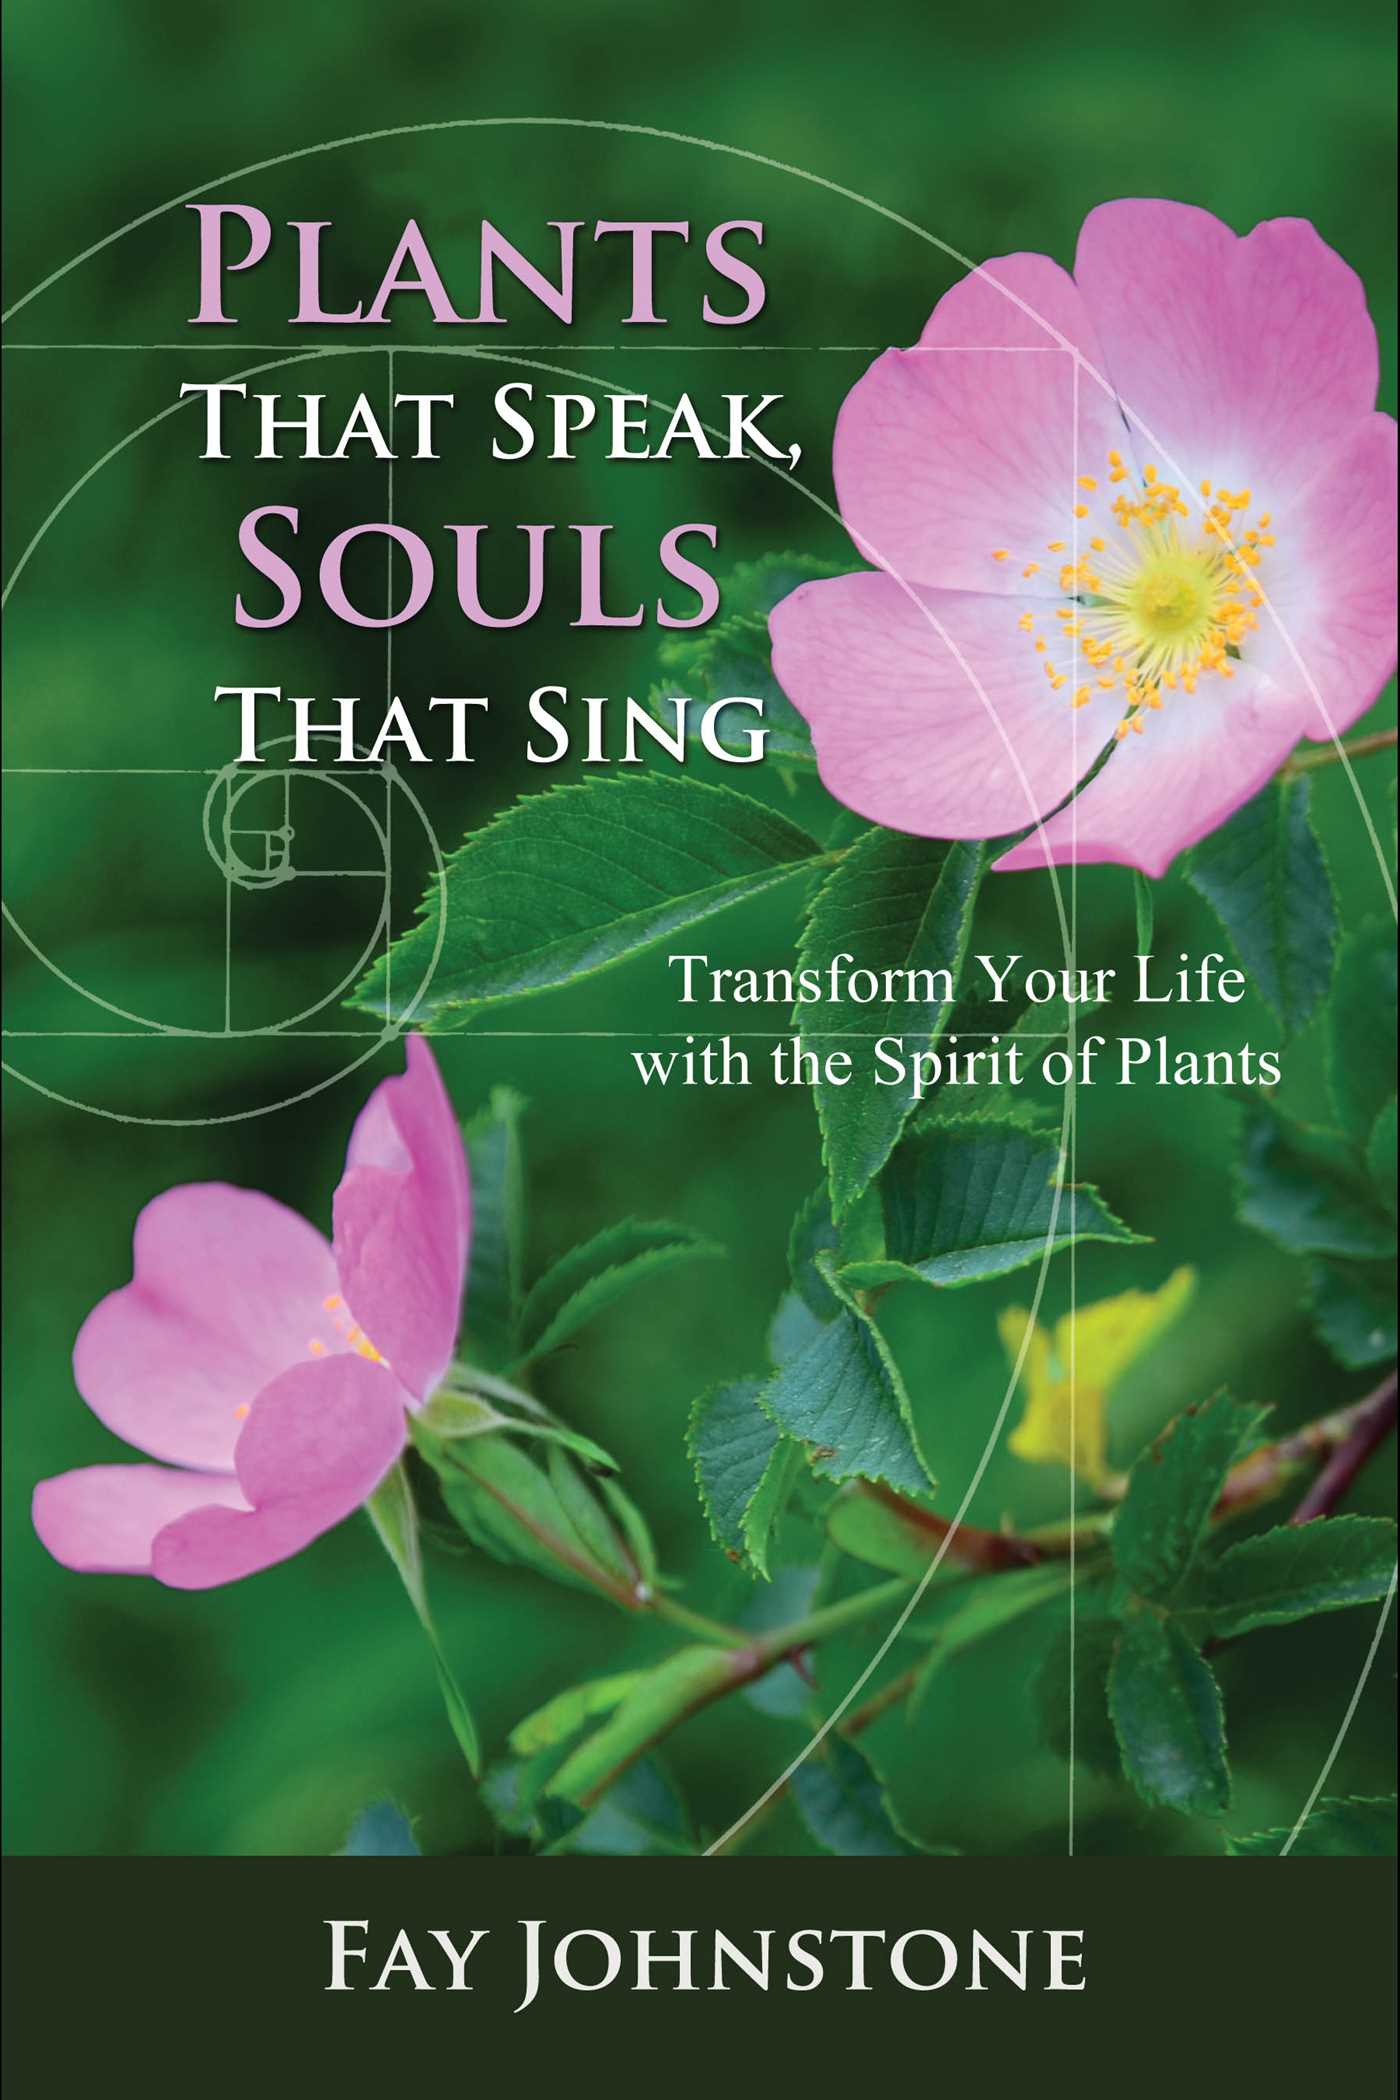 Plants that speak souls that sing 9781844097517 hr